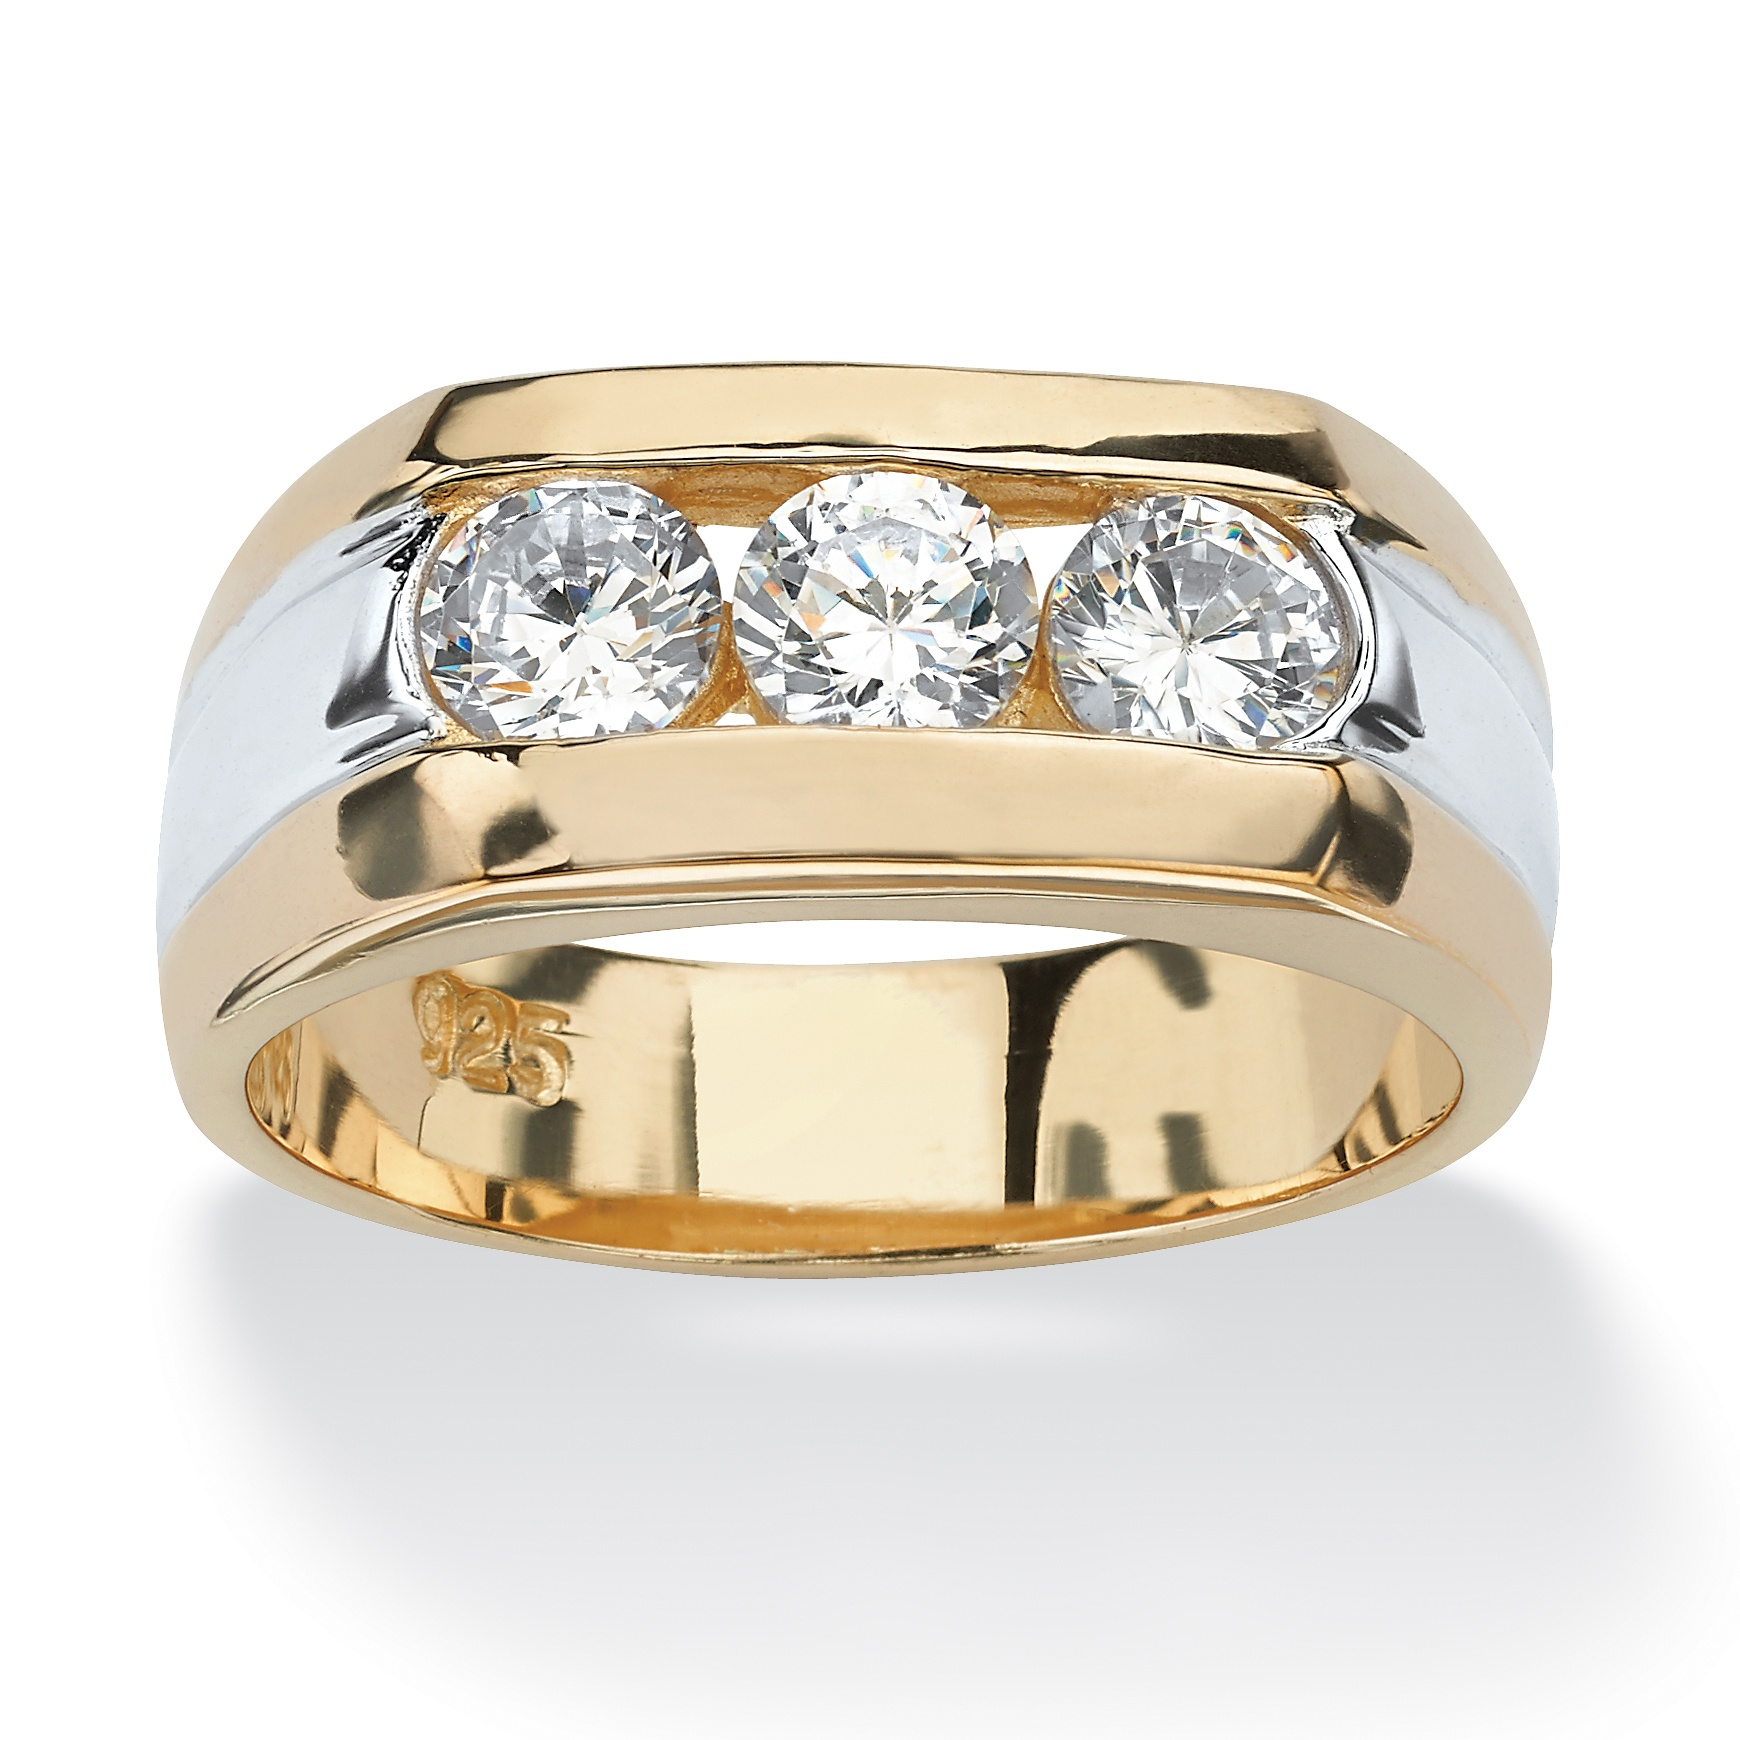 otpirise.cf - Buy Gold and Diamond Jewellery Online in India with the latest jewellery designs from our online jewellery shopping store with COD, day free returns on jewellery, free shipping and a lifetime exchange policy. Best jewellery website for online jewellery shopping in India with Designer Rings, Pendants, Earrings, Mangalsutra, Bangles, Bracelets, Solitaire Diamonds.